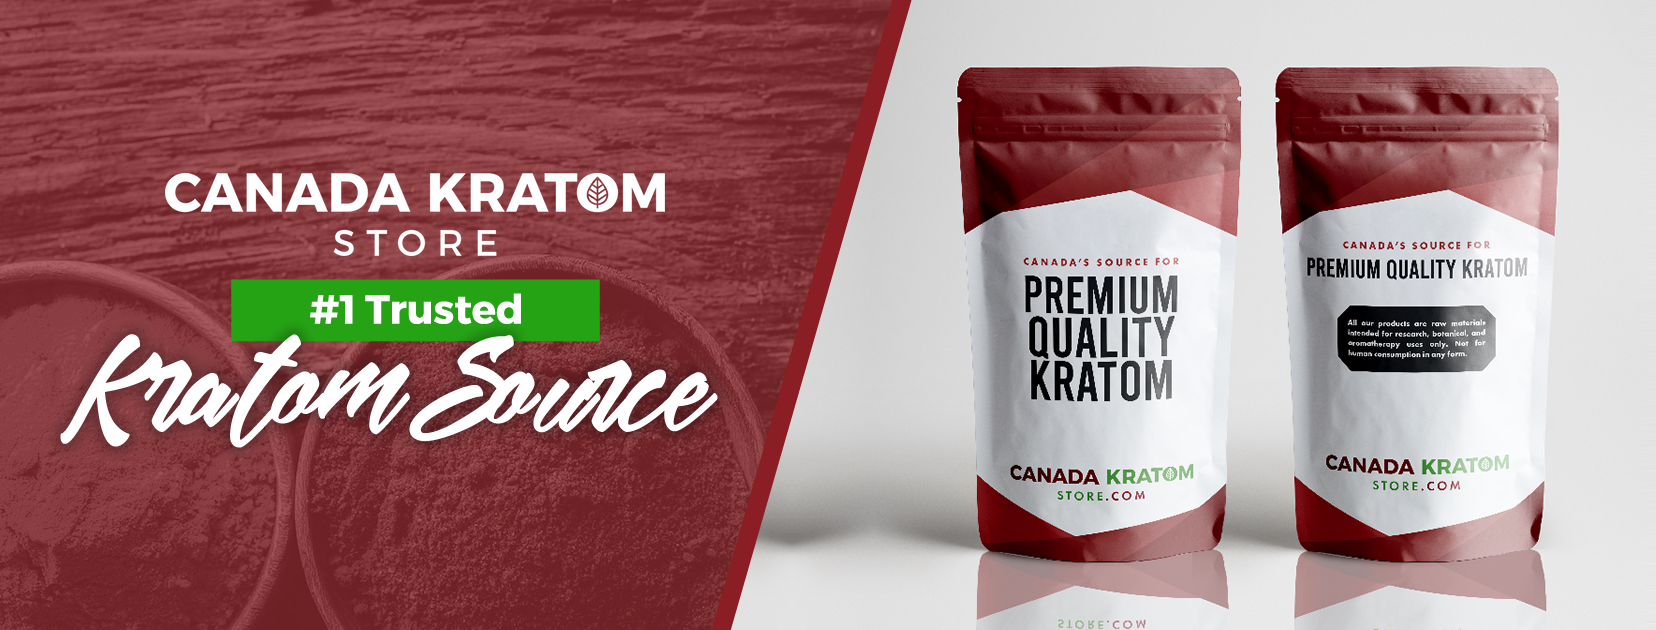 Canada Kratom Store #1 Trusted Kratom Source